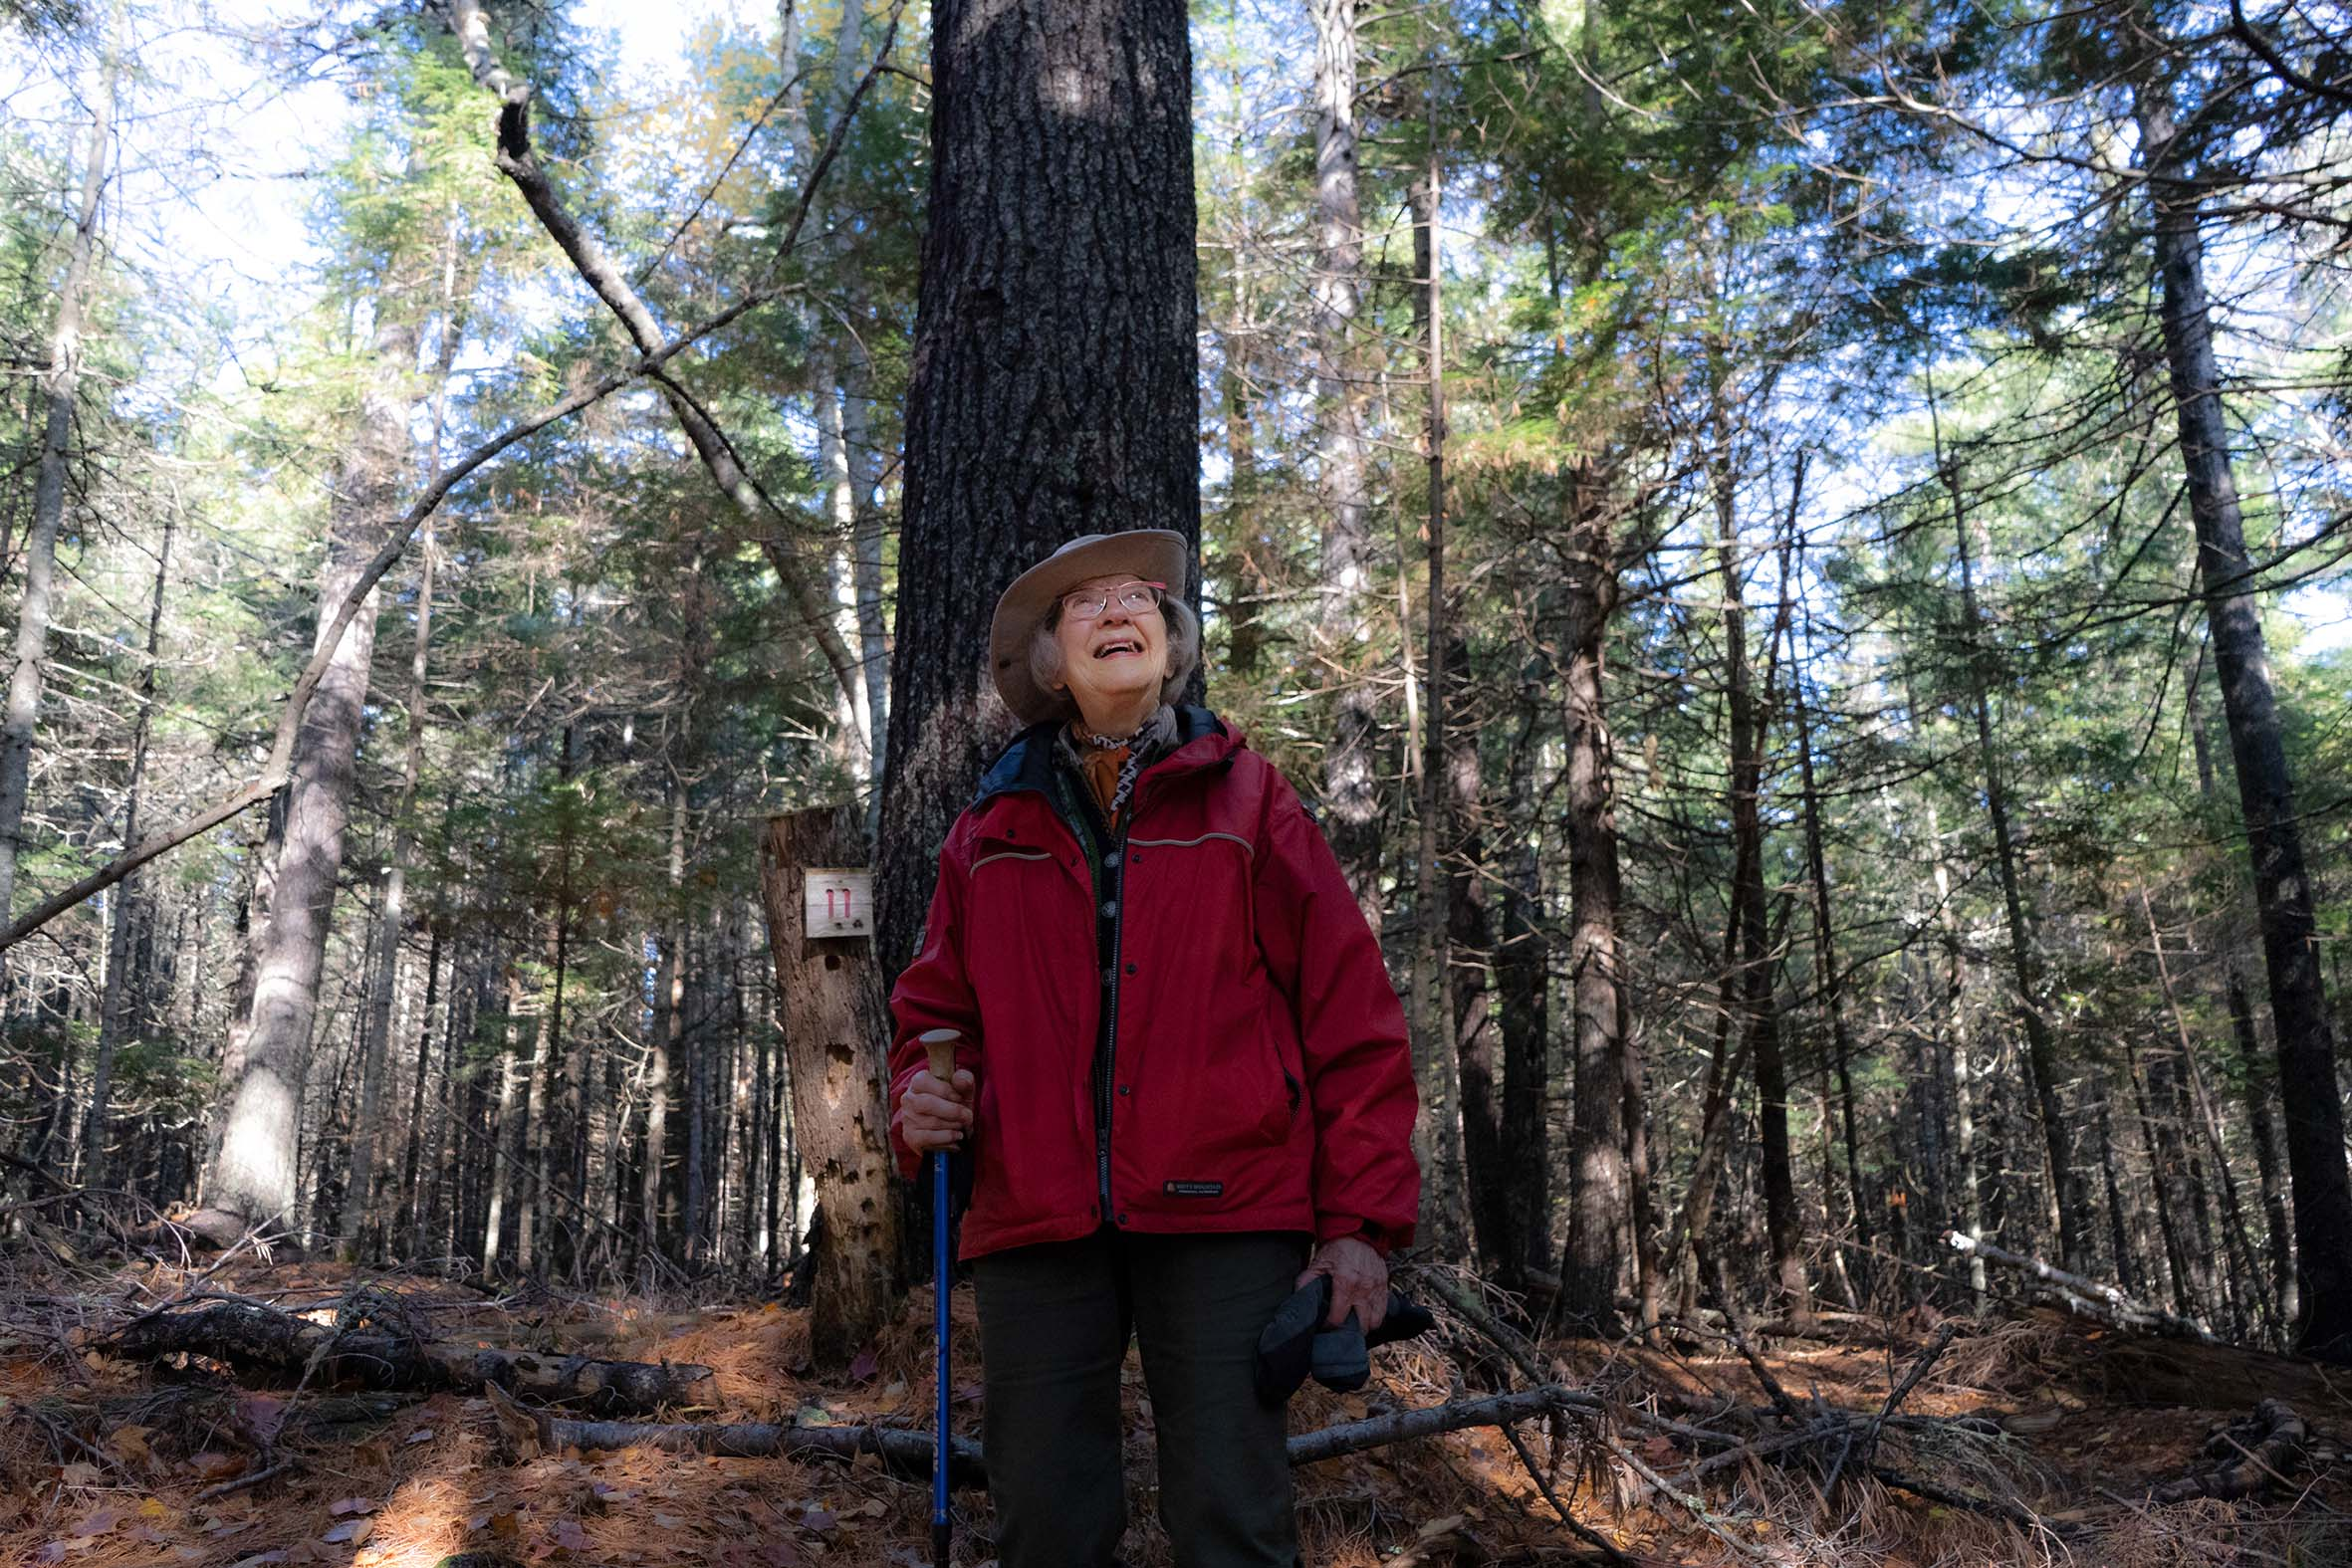 A woman stands in her forest in front of a large pine.